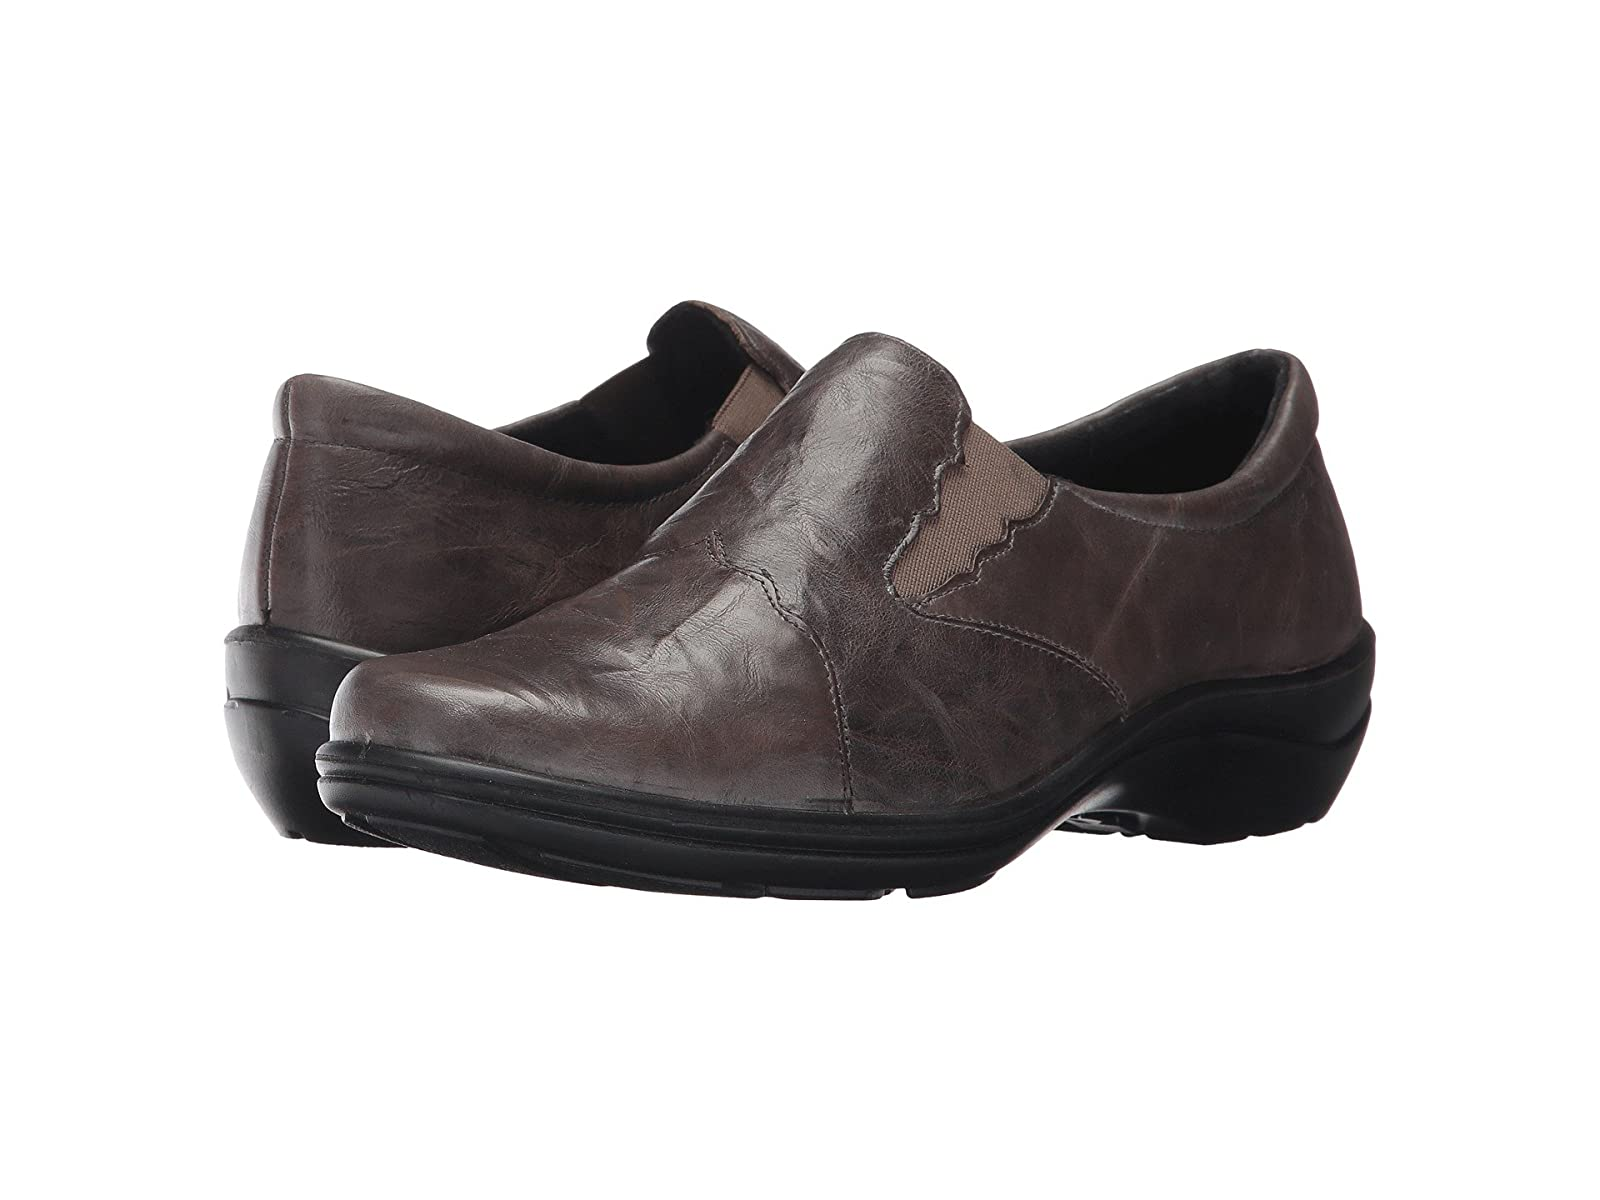 Romika Cassie 24Atmospheric grades have affordable shoes